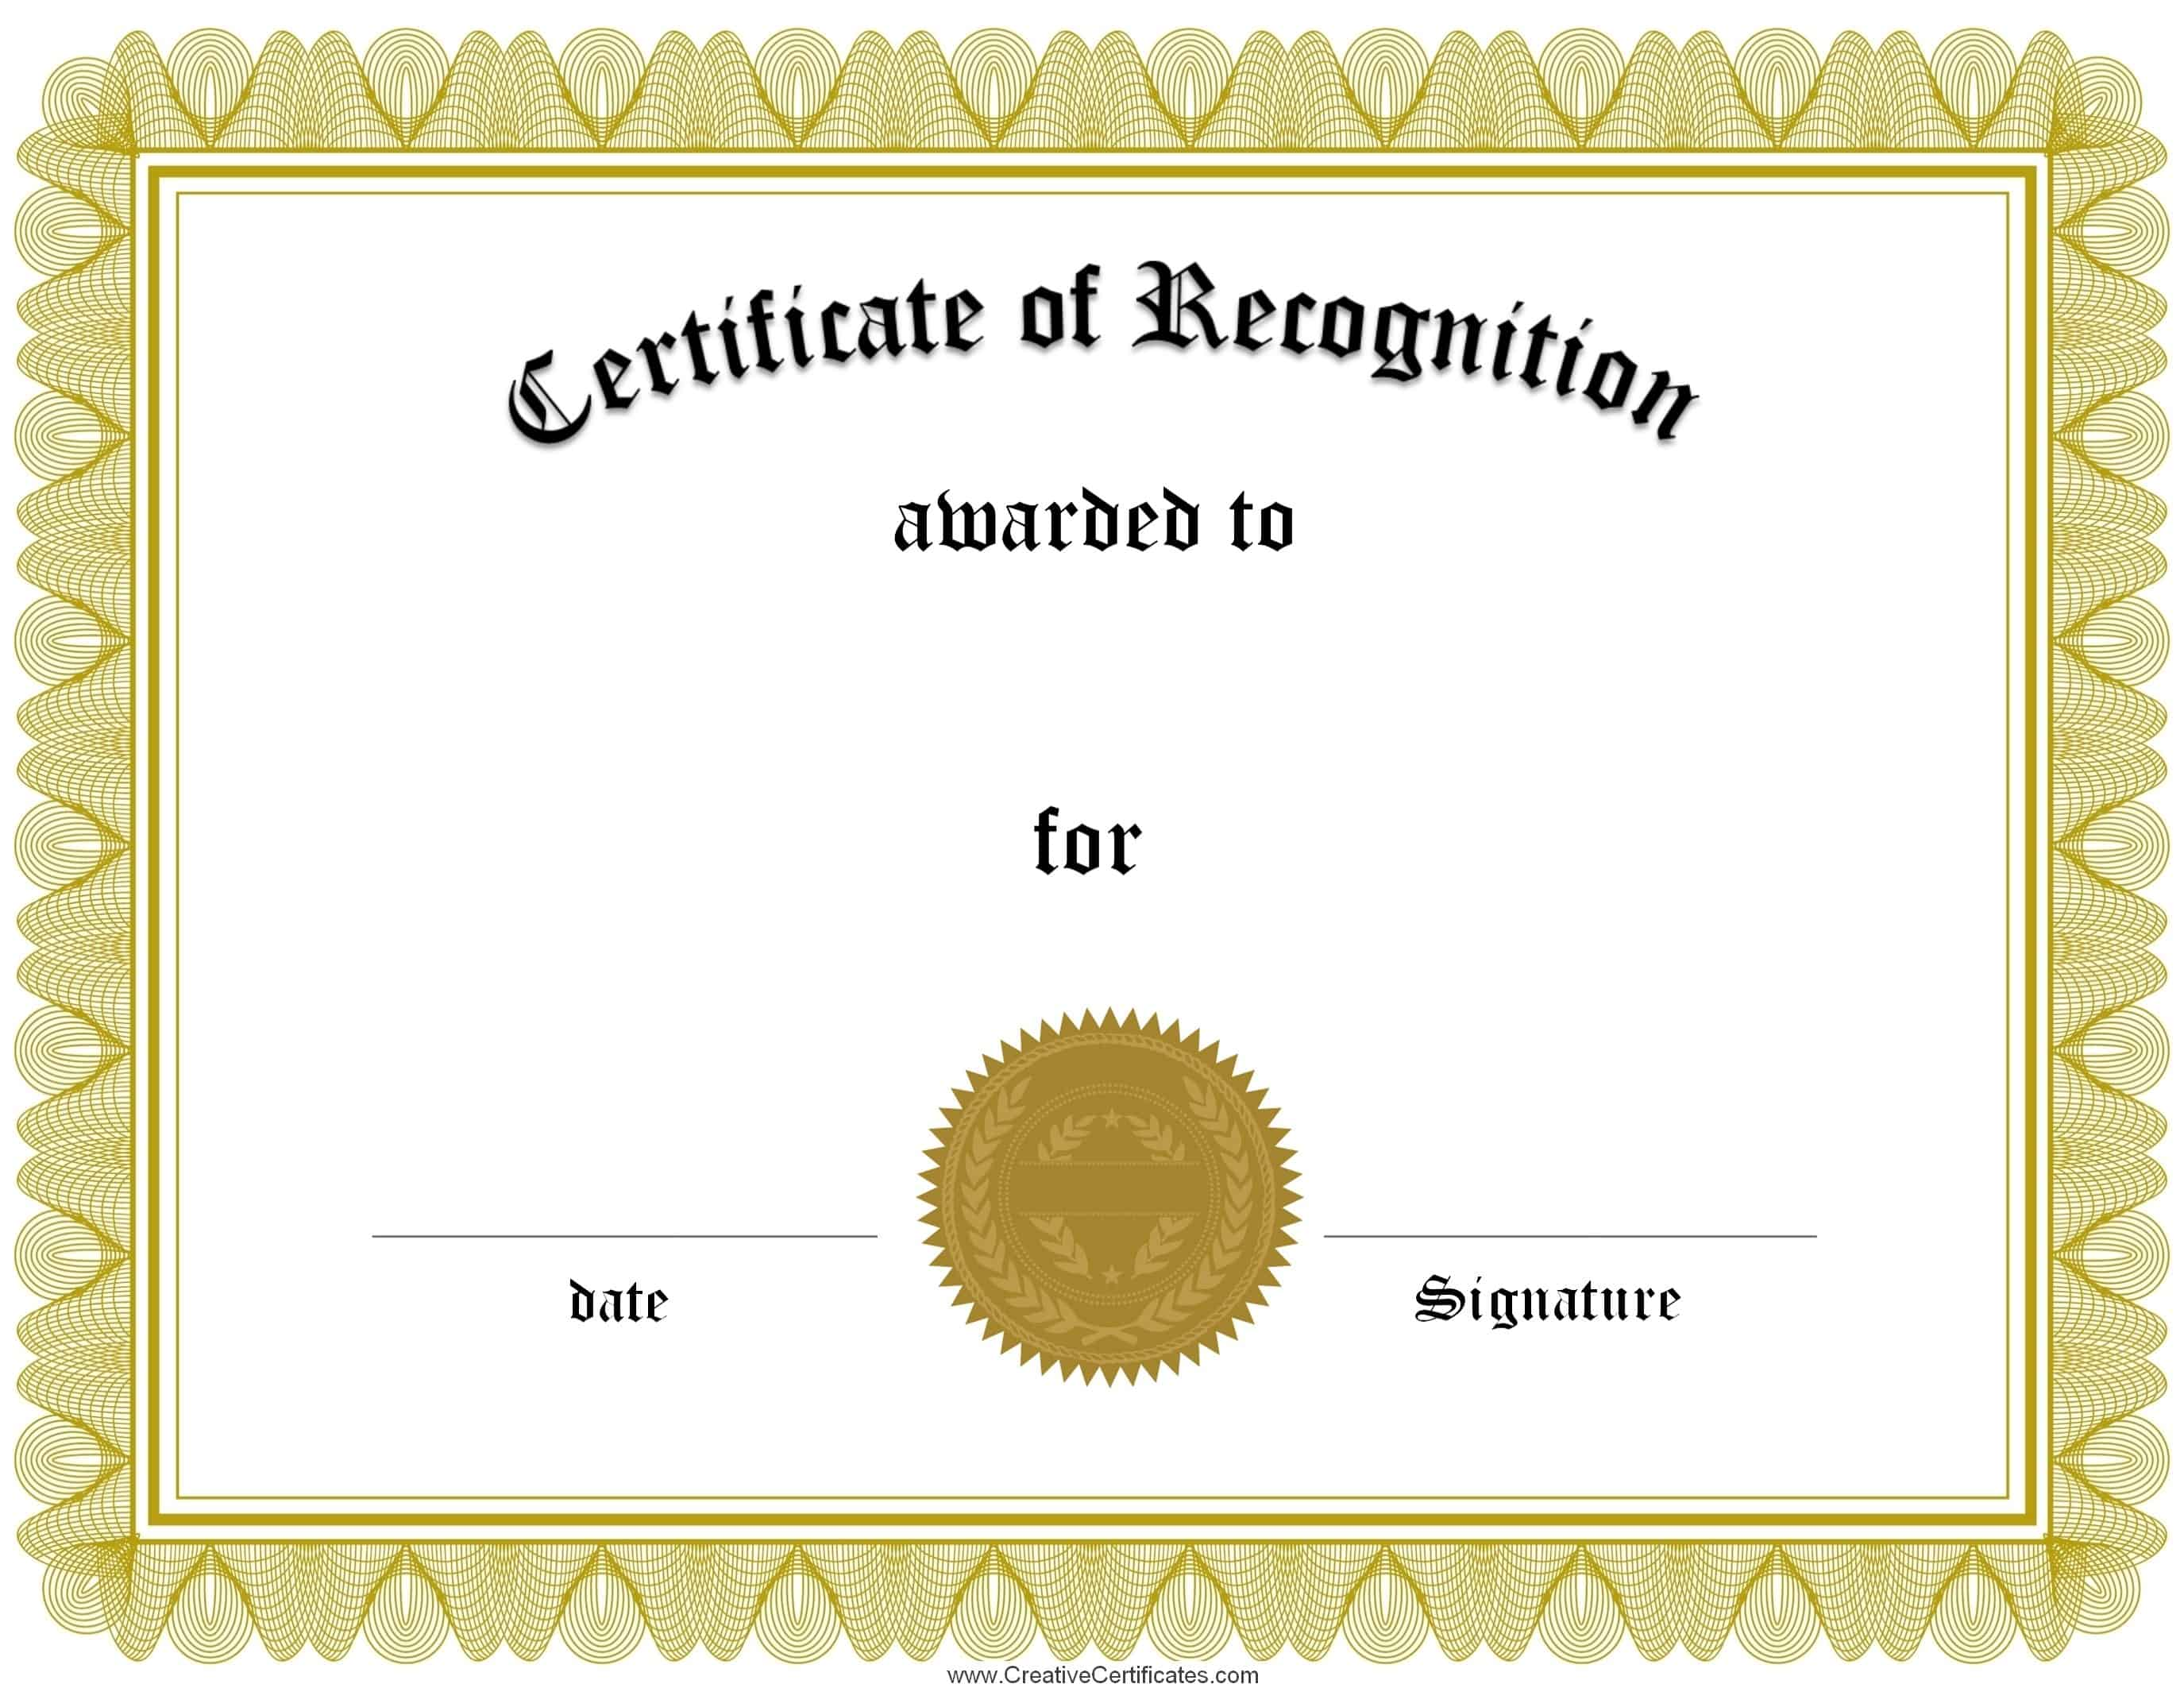 Free certificate of recognition template – Certificates of Recognition Templates